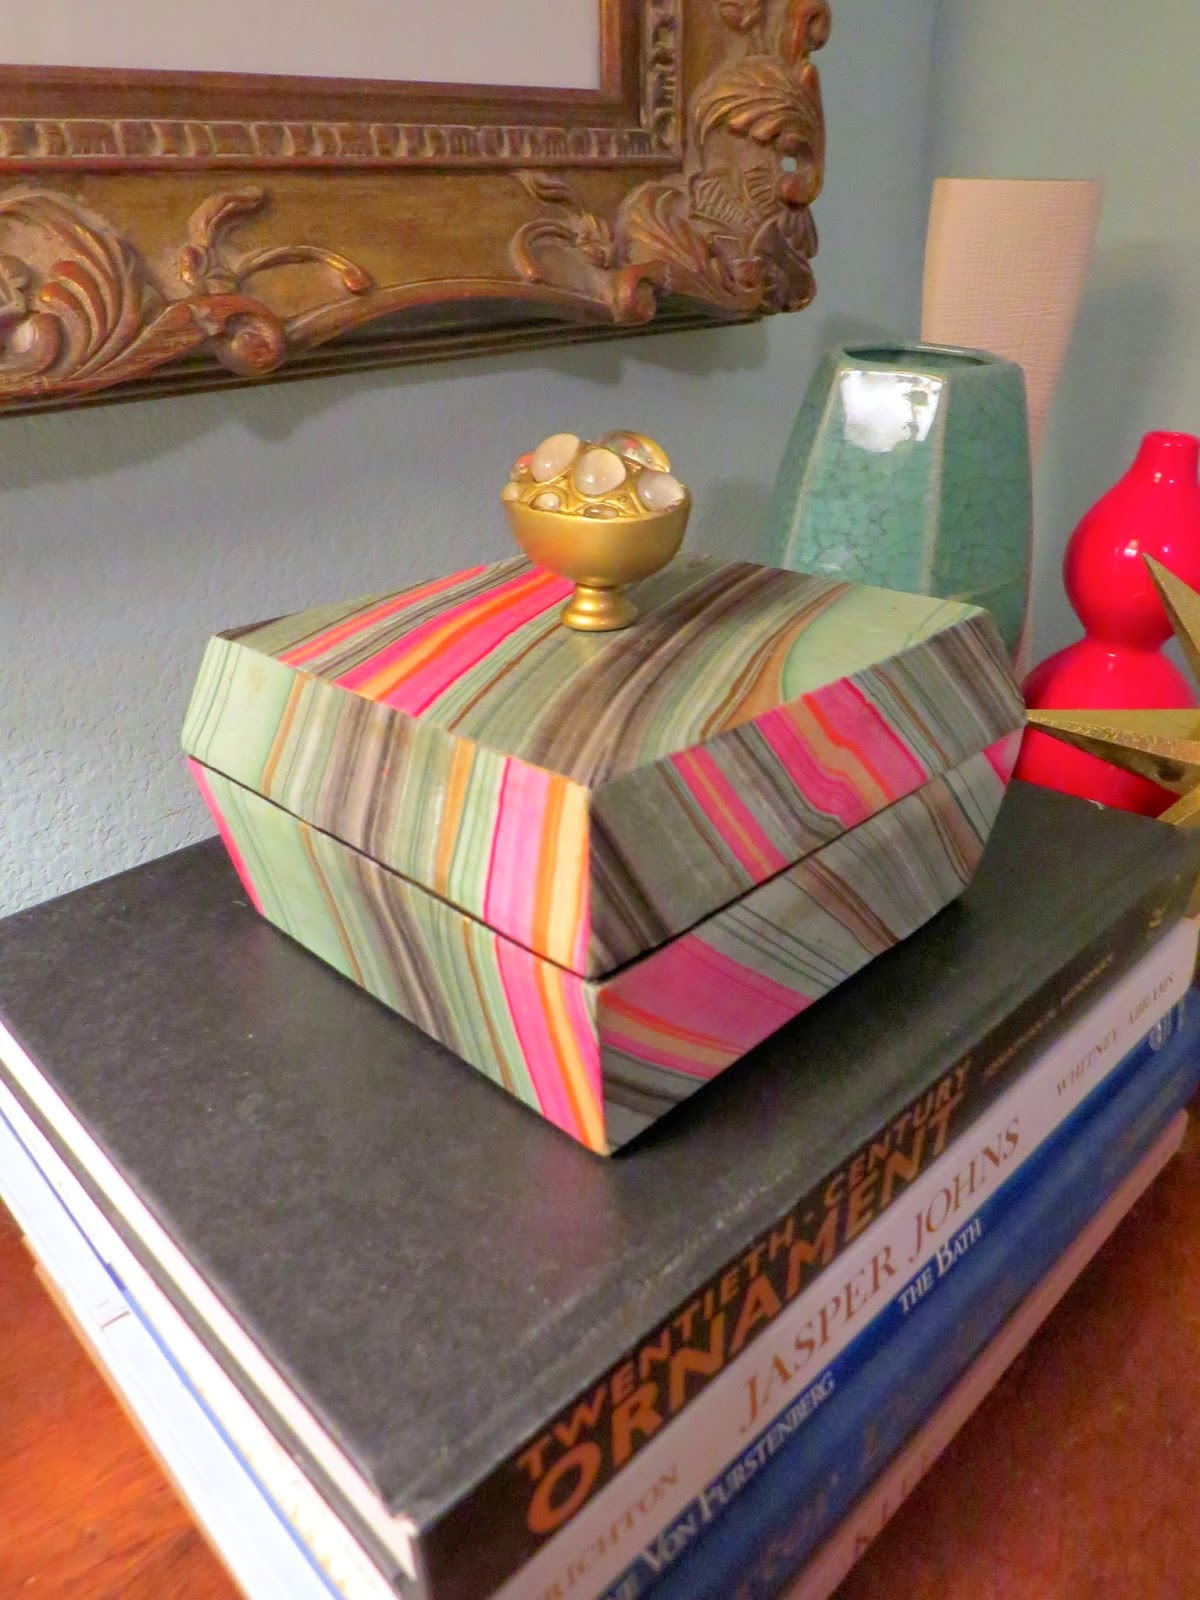 http://inspiredyetagain.blogspot.com/2014/01/diy-box.html